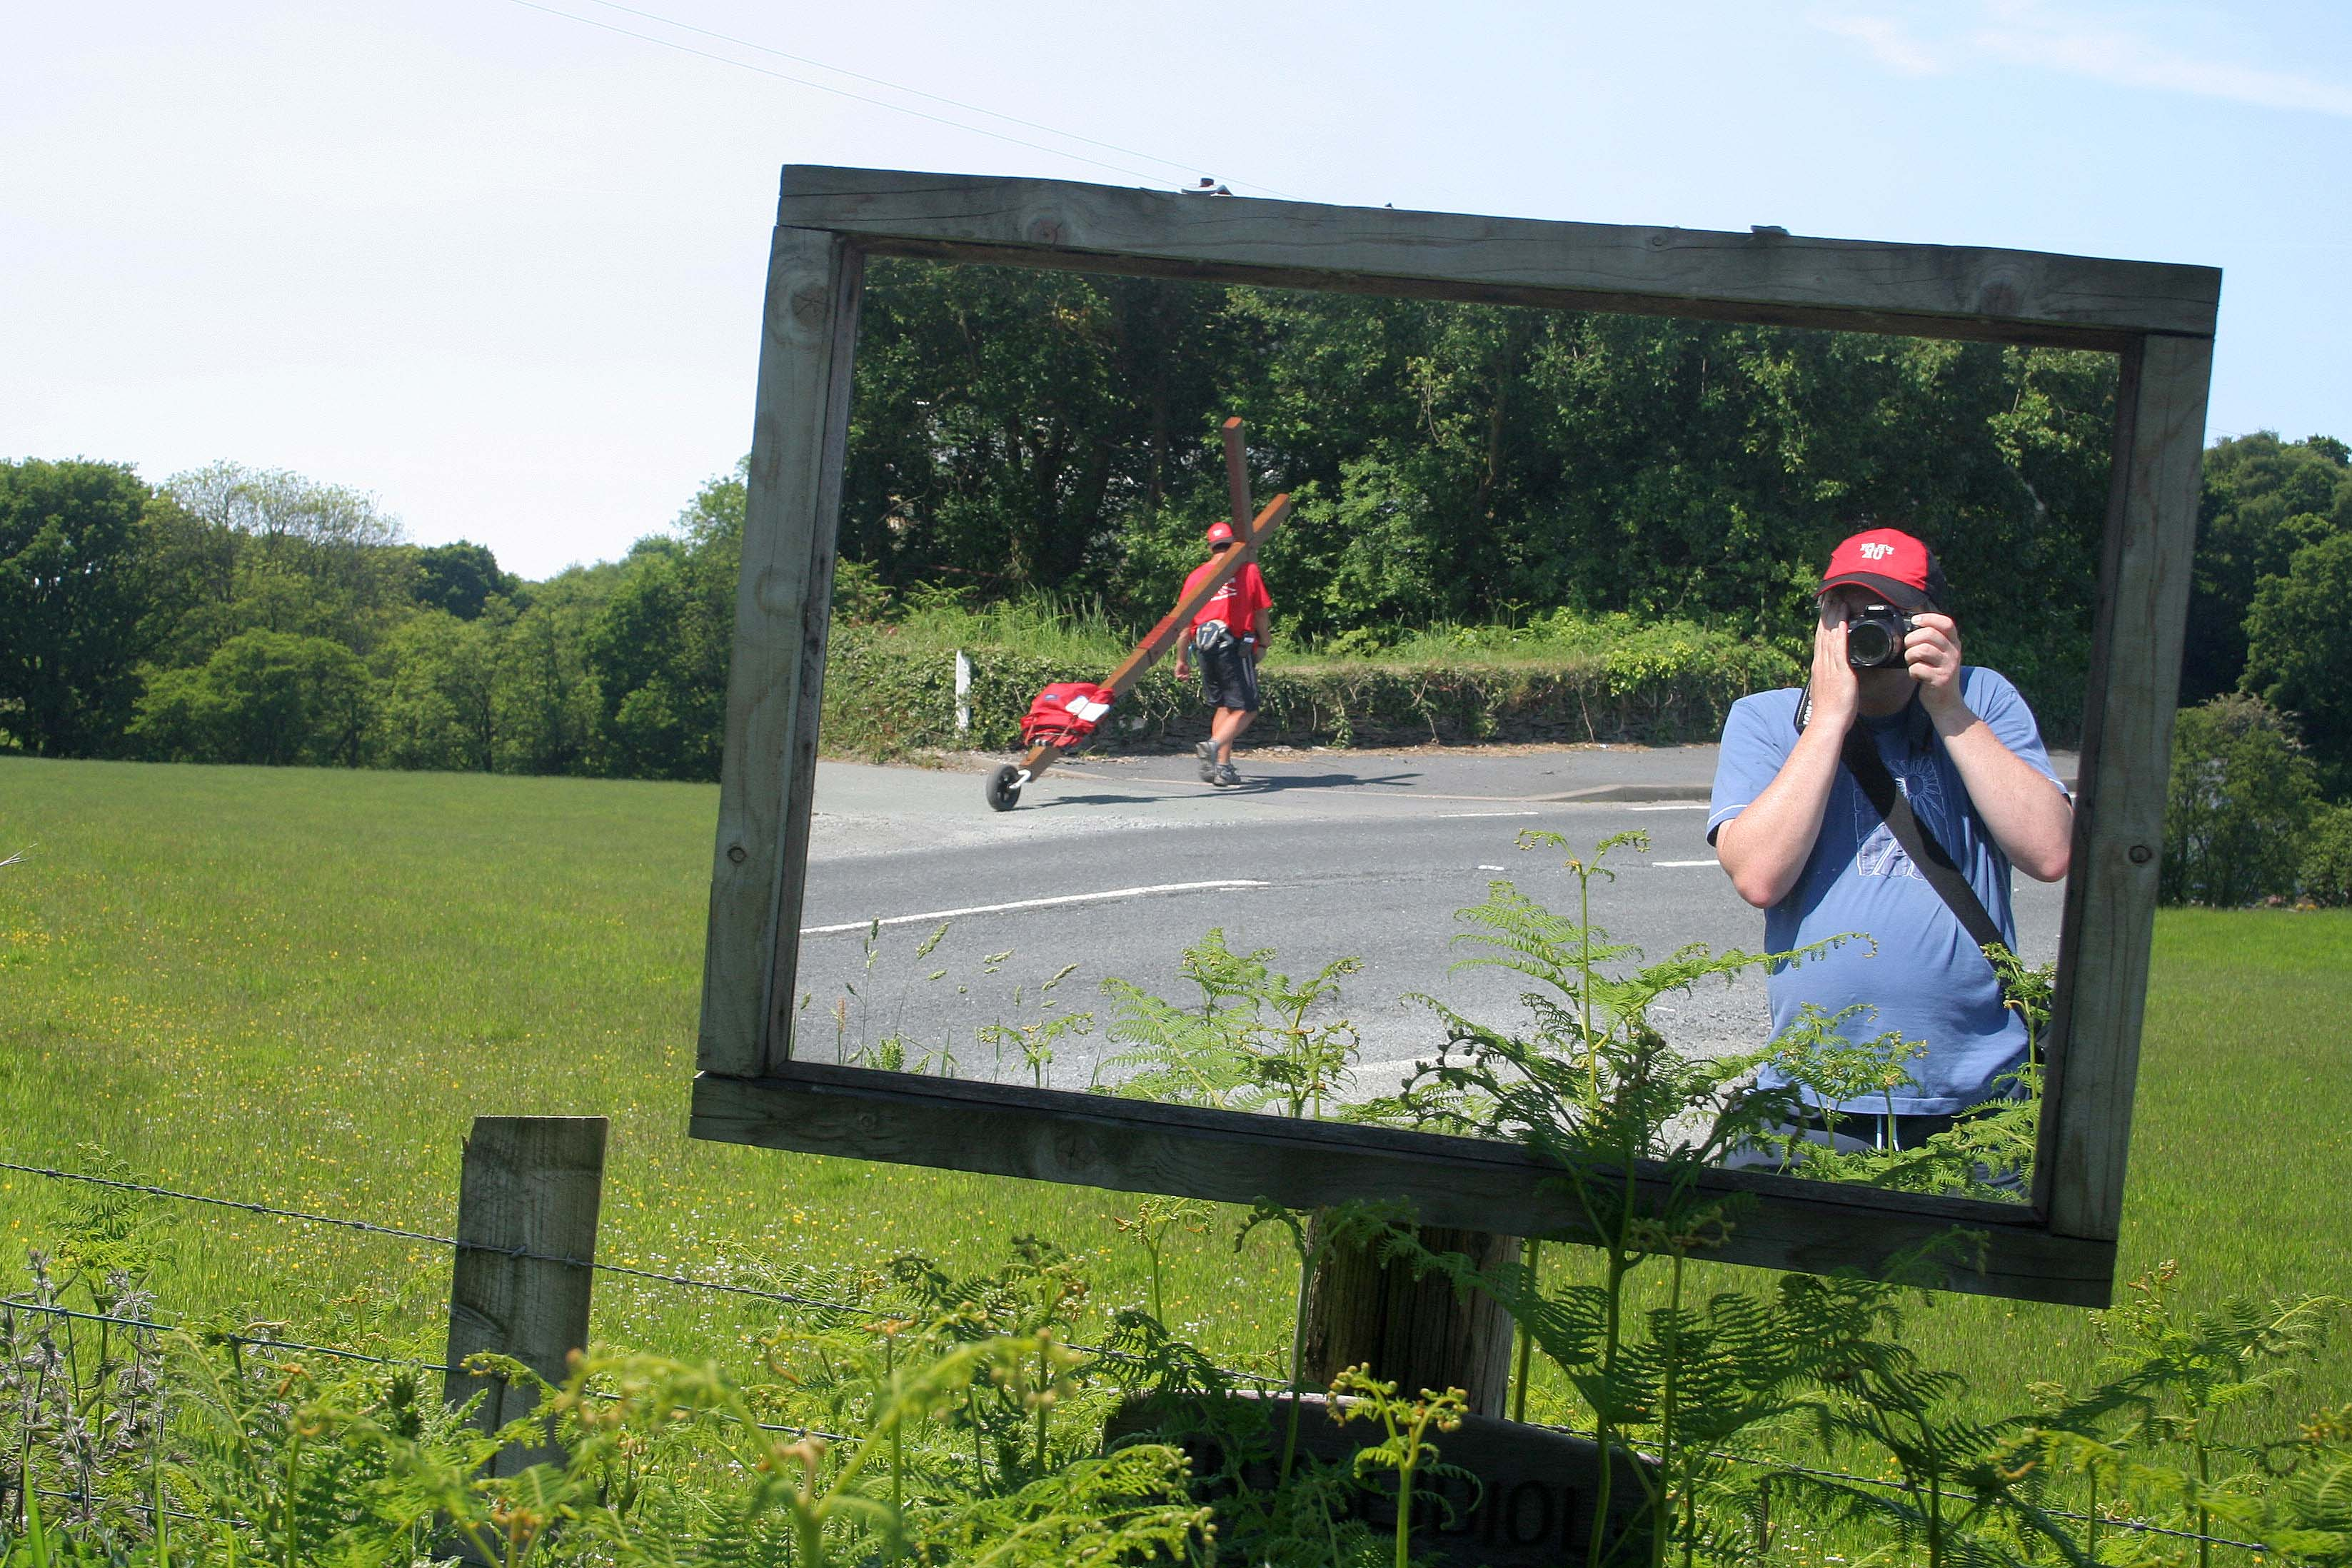 Counties evangelist Clive Cornish captured walking his cross in a roadside mirror - somewhere in mid-Wales